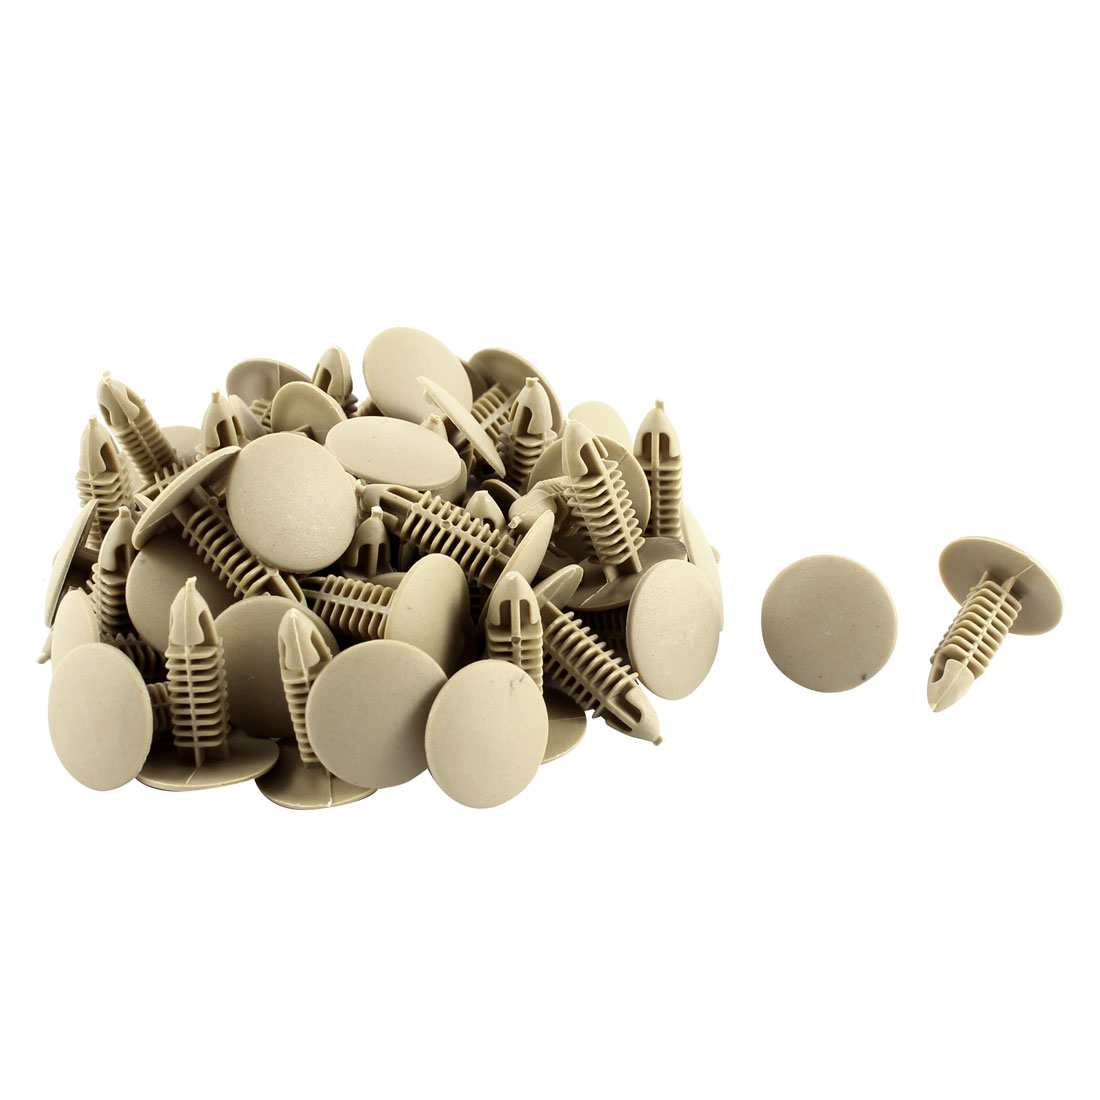 50 Pcs Khaki Plastic Splash Guard Moulding Mat Clips 6mm x 17mm x 21mm